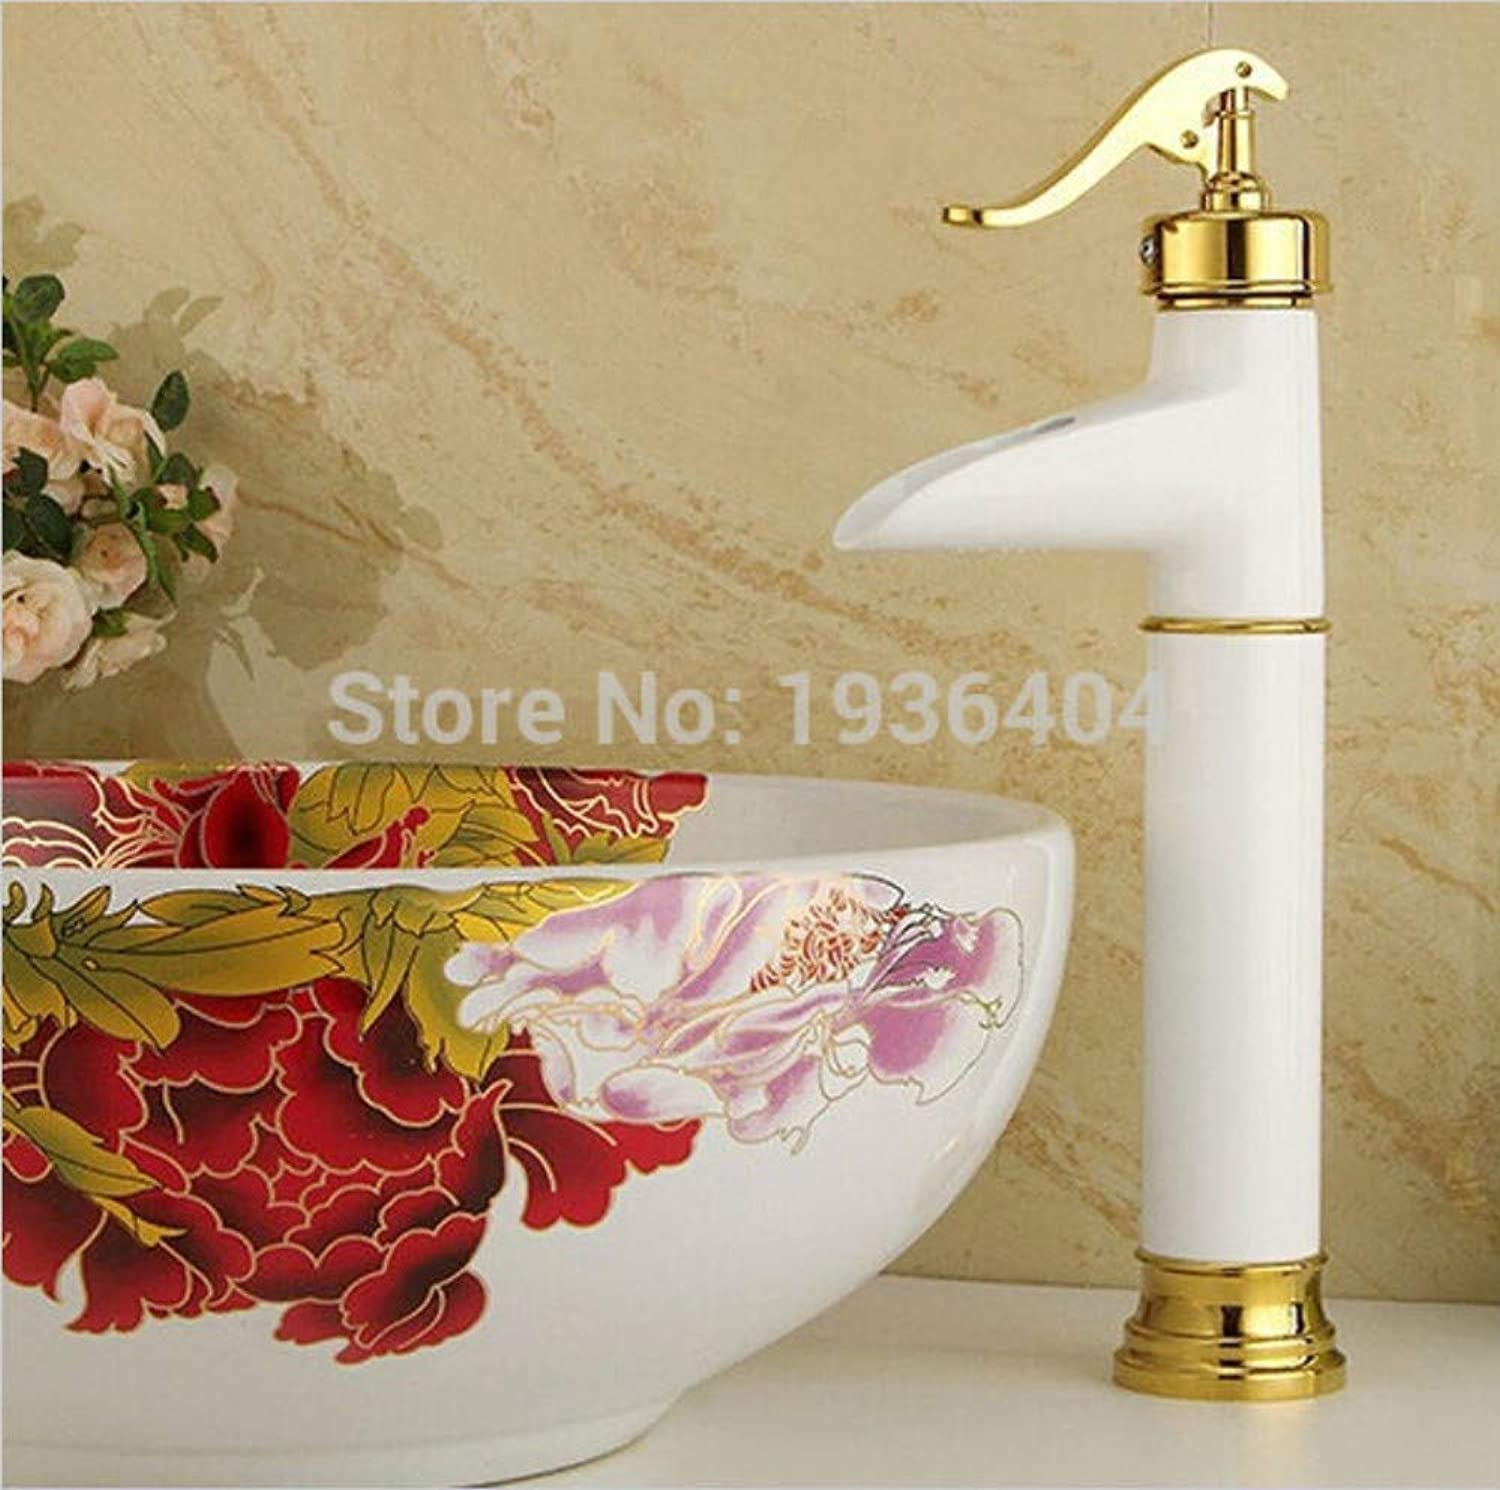 YUJING Single Tap Bathroom Archaize copper faucet basin faucet deck mounted Grilled Weiß paint hot and cold mixer taps